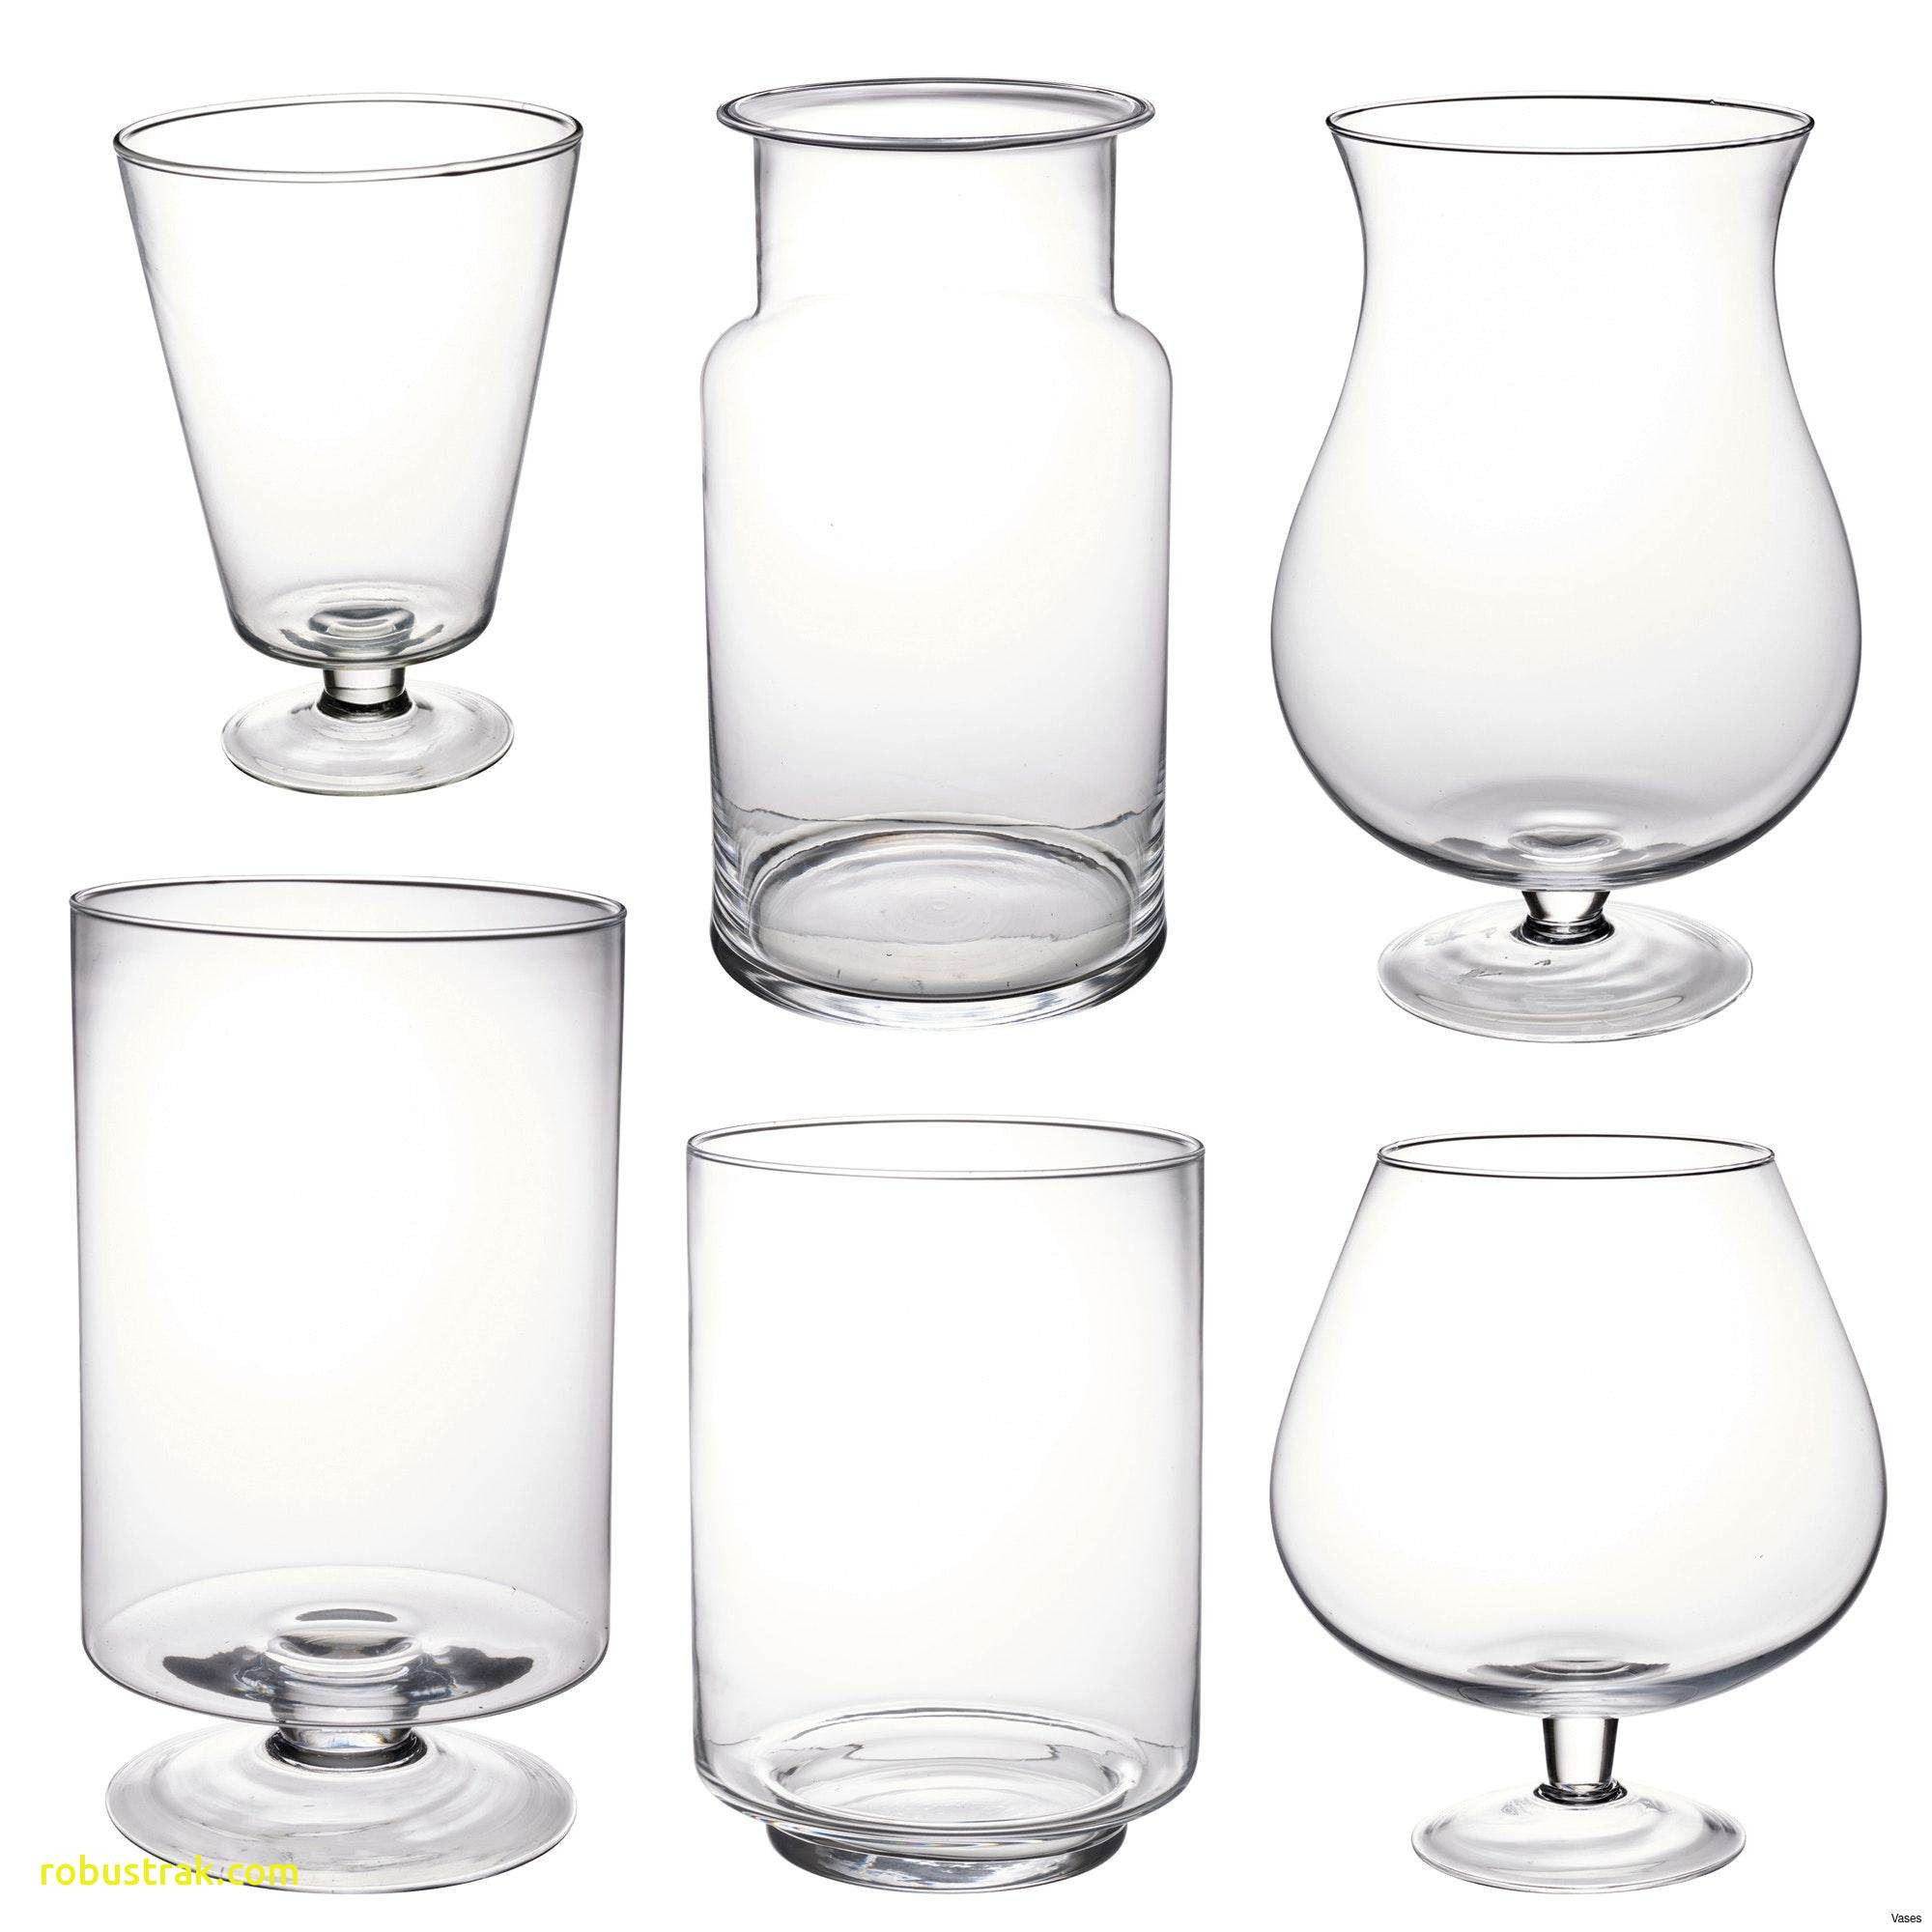 white flower vases for sale of awesome decorative vases for living room home design ideas pertaining to unique dining room accent with reference to living room small vases beautiful cheap glass vases 1h